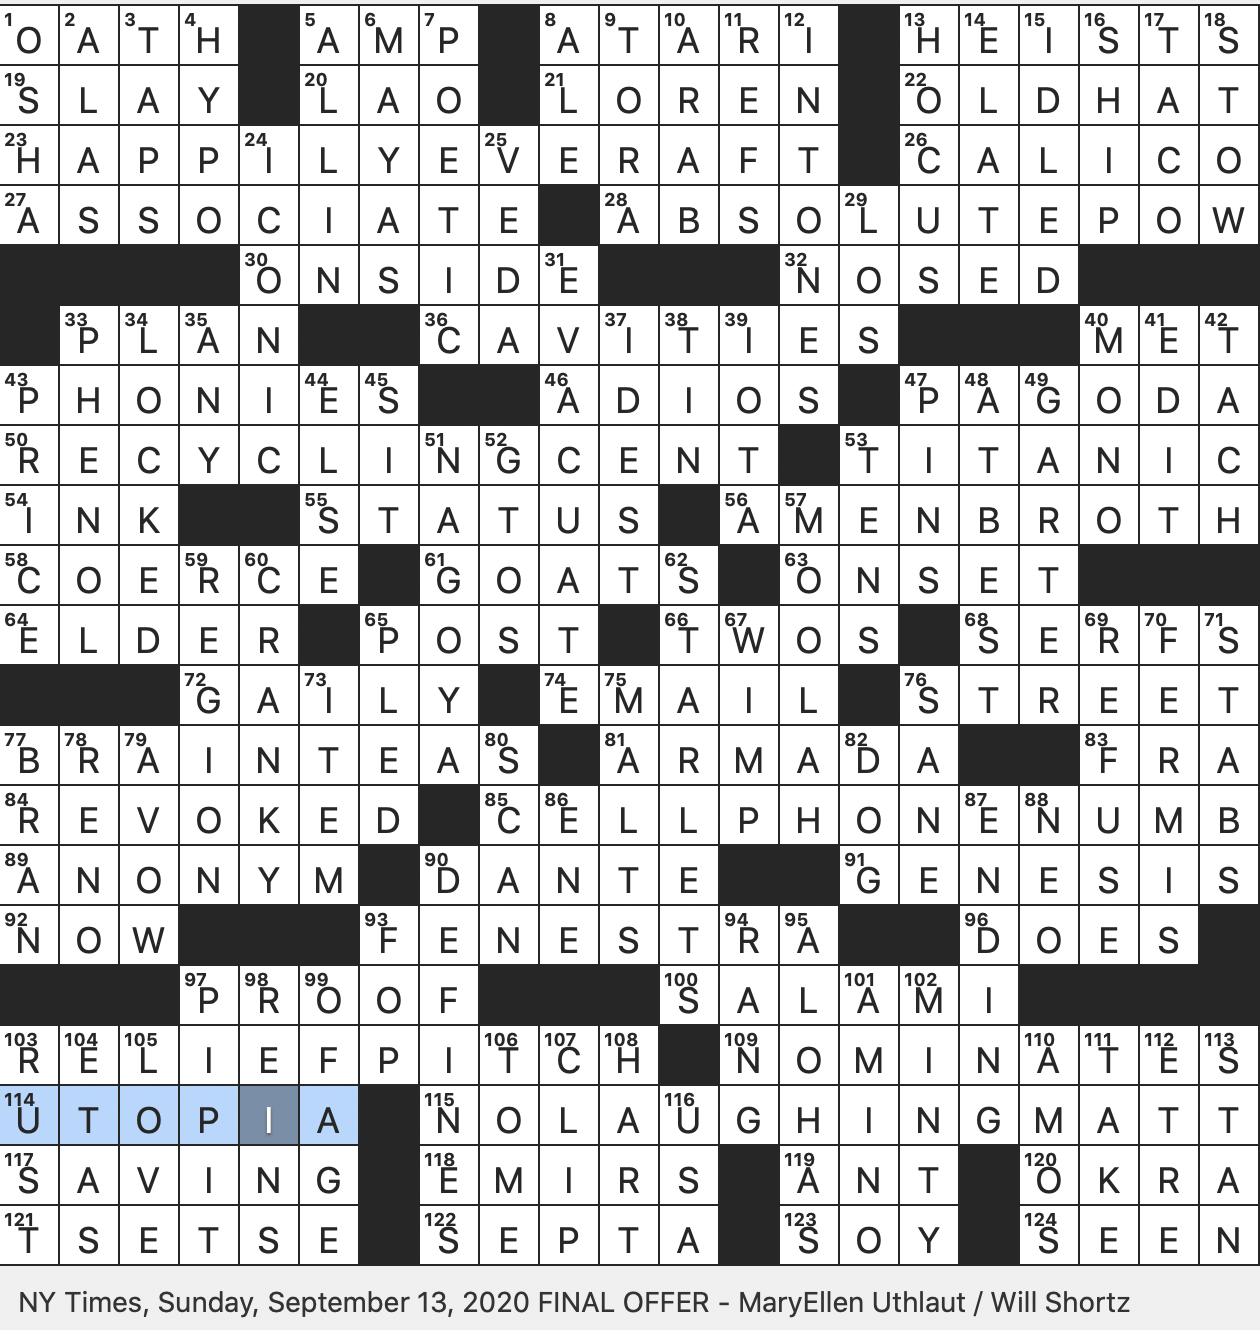 Rex Parker Does The Nyt Crossword Puzzle Some Atom Smashers Briefly Thu 6 16 16 Lolita S Workplace In Song Ancient Greek Coin 2016 Key Peele Action Comedy Source Of Gravity Source Of Gravy